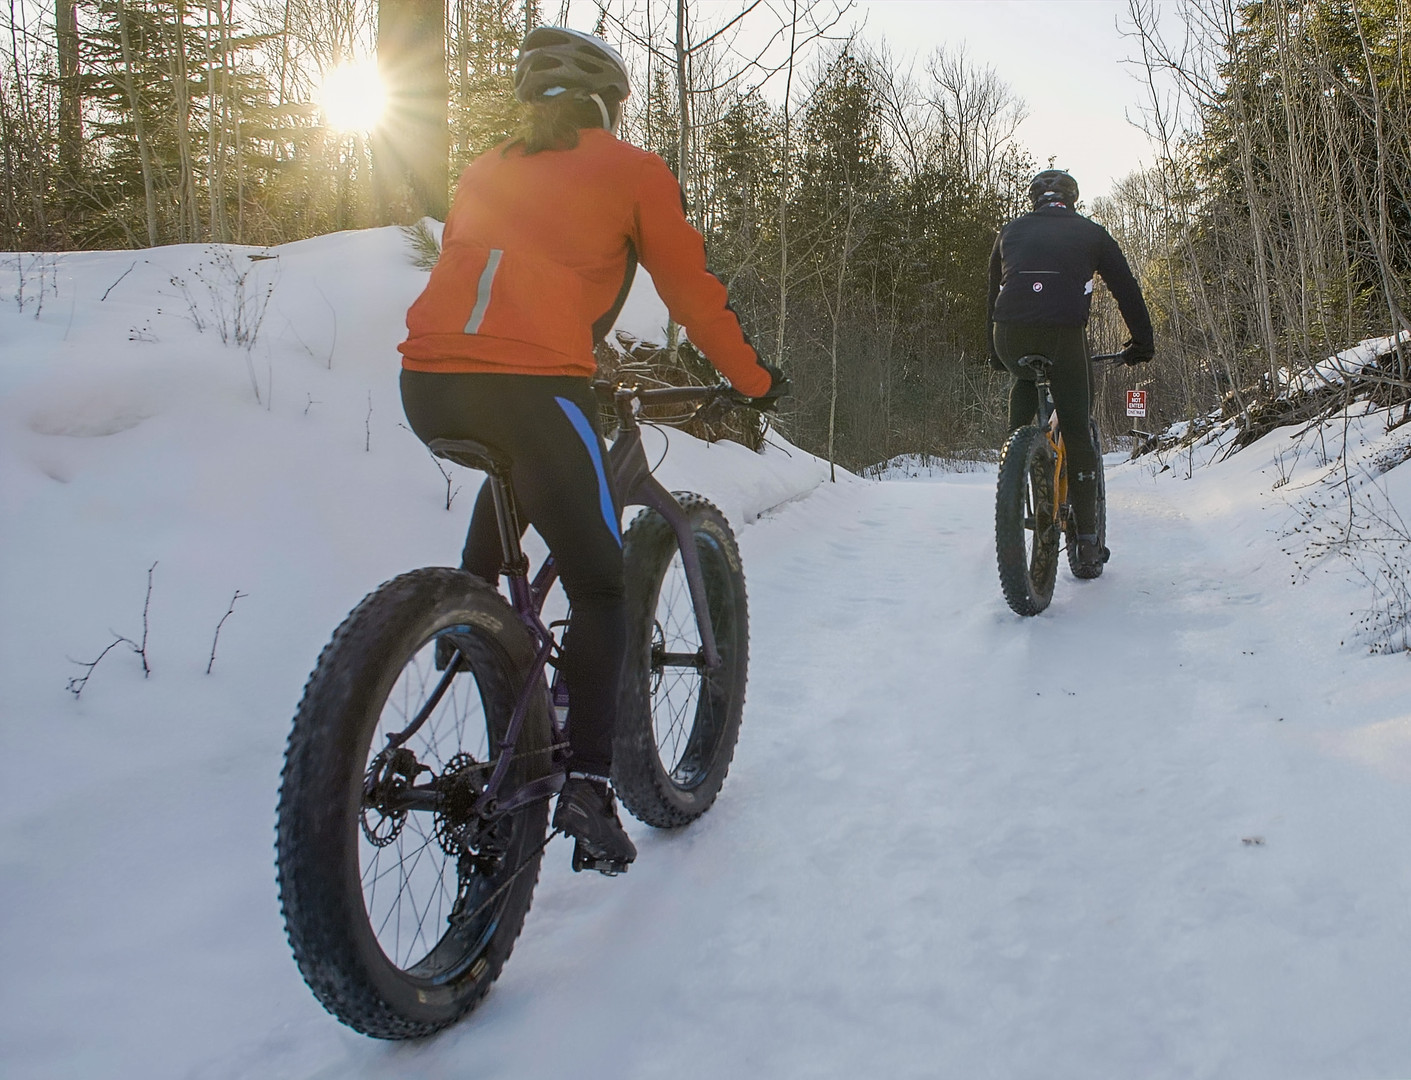 Hitting the Trails in Winter